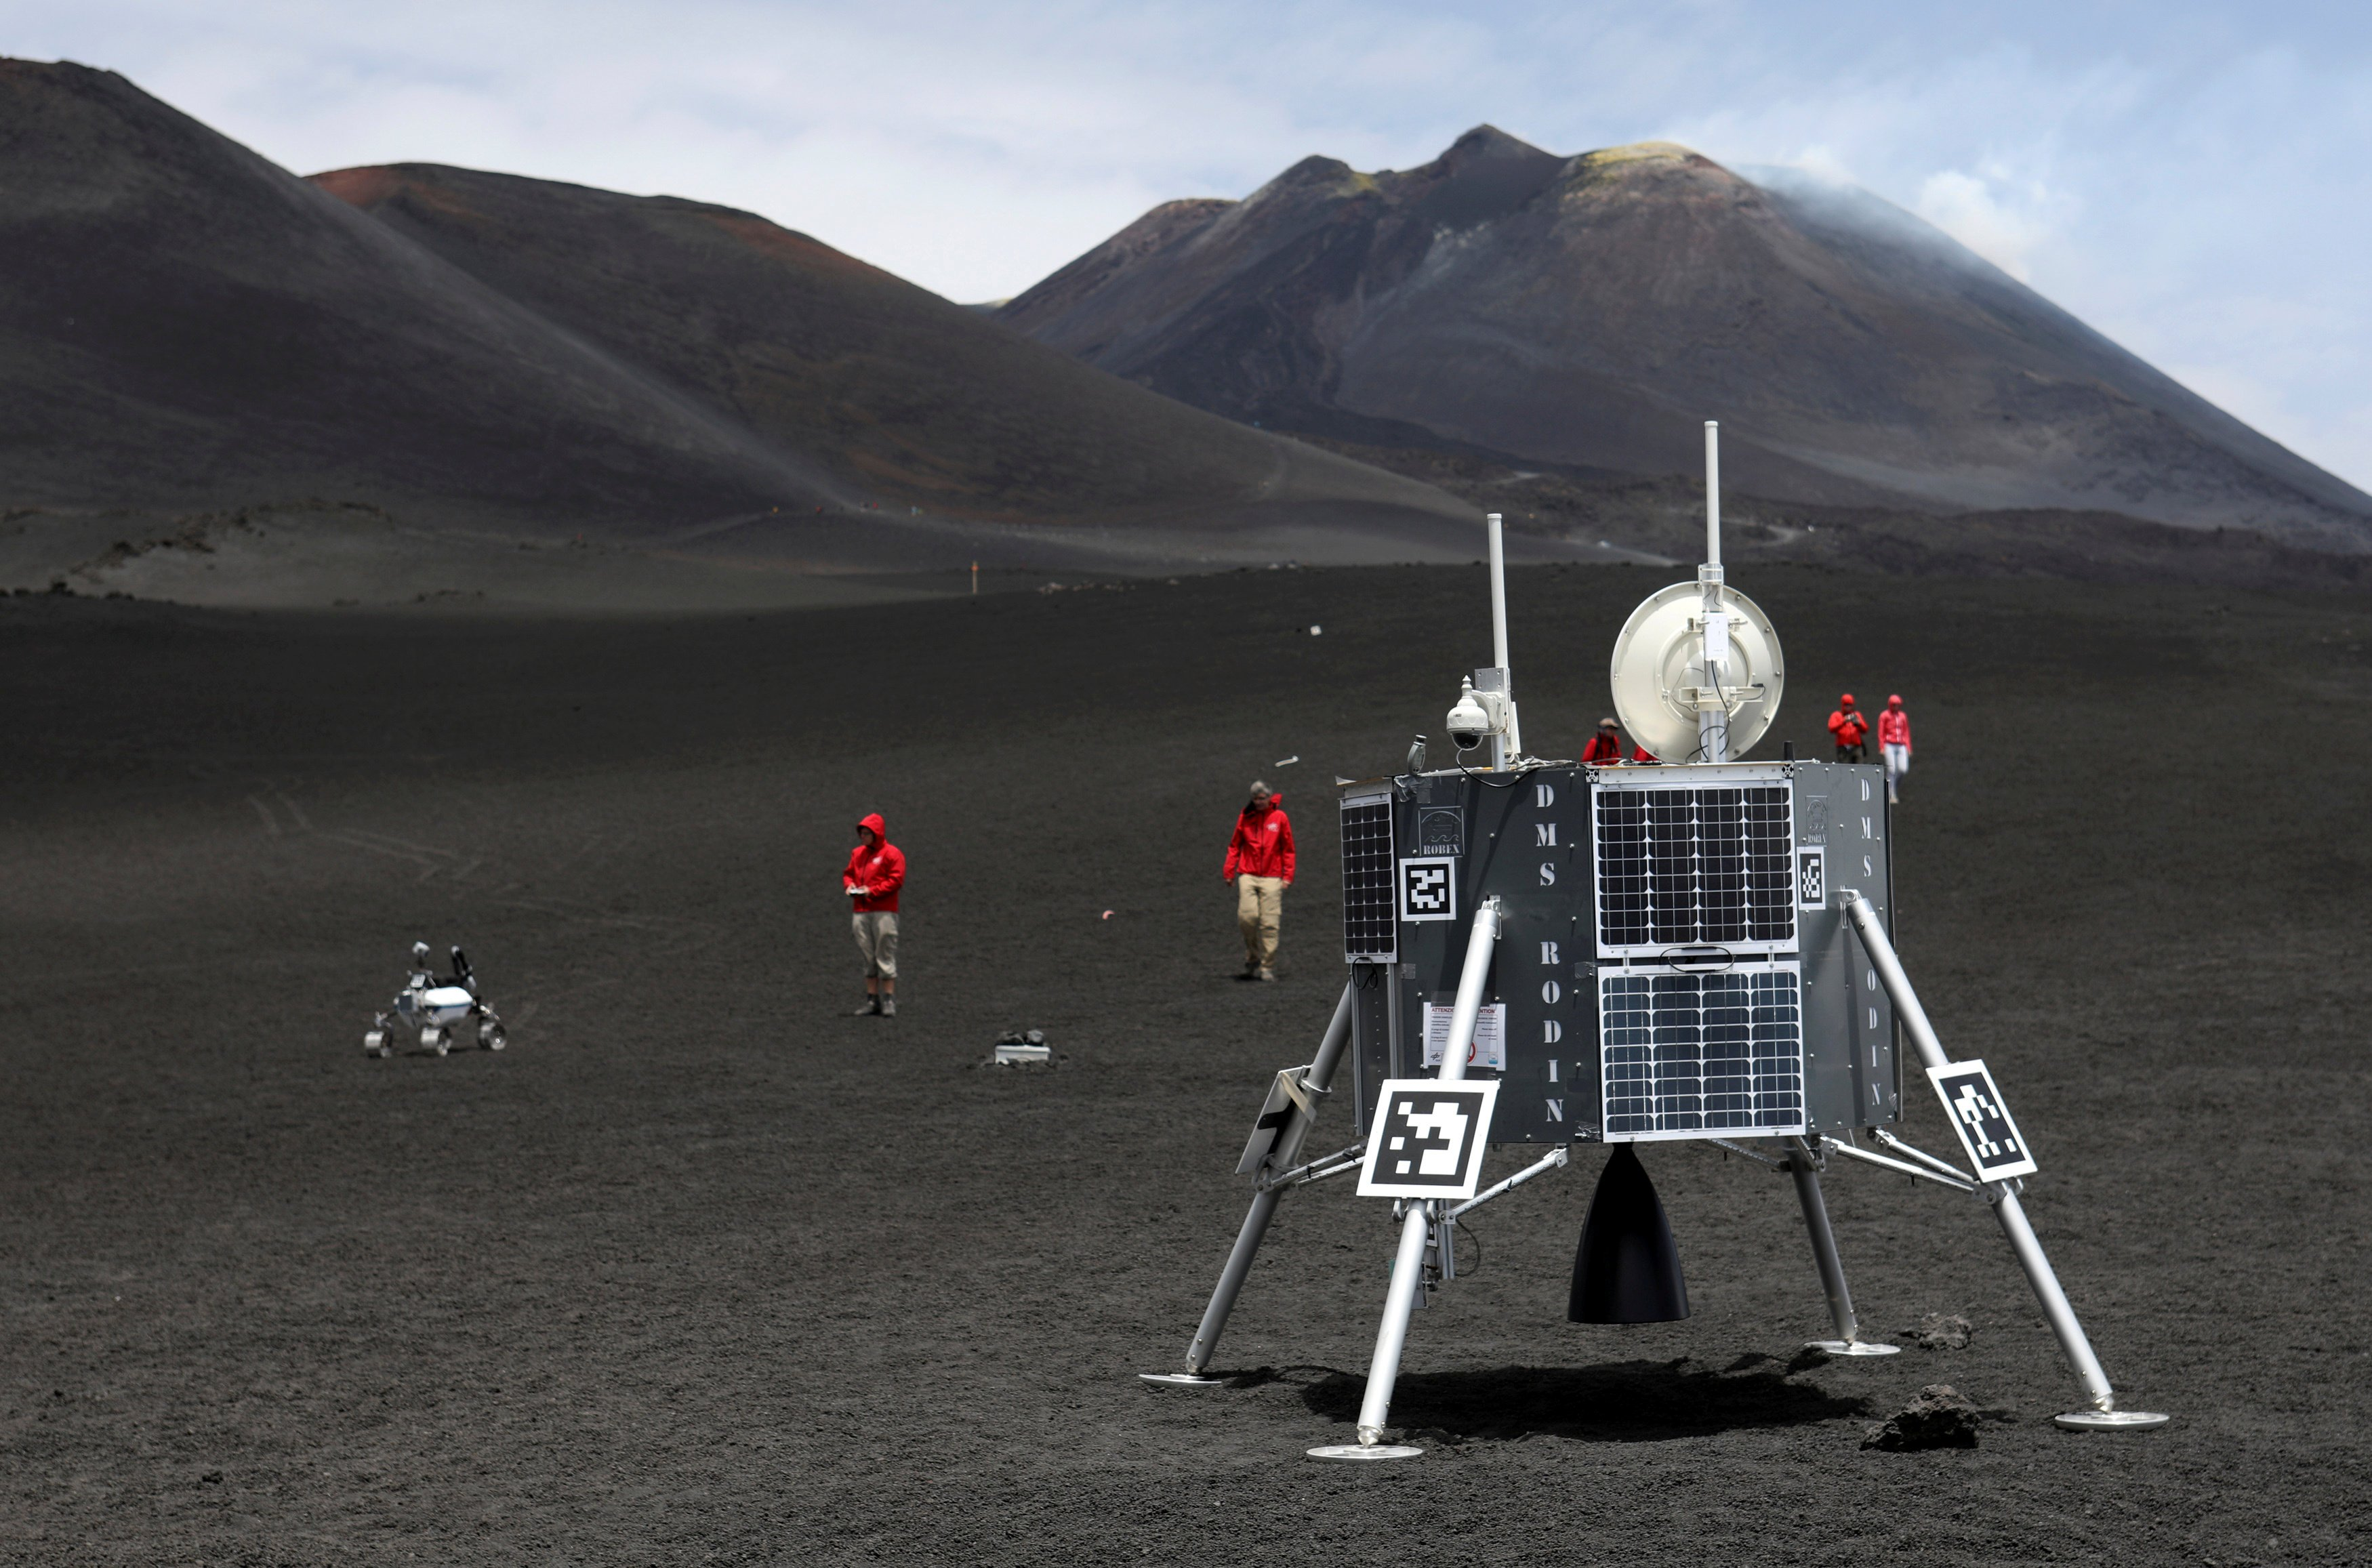 Lunar Robots Tested On Mount Etna